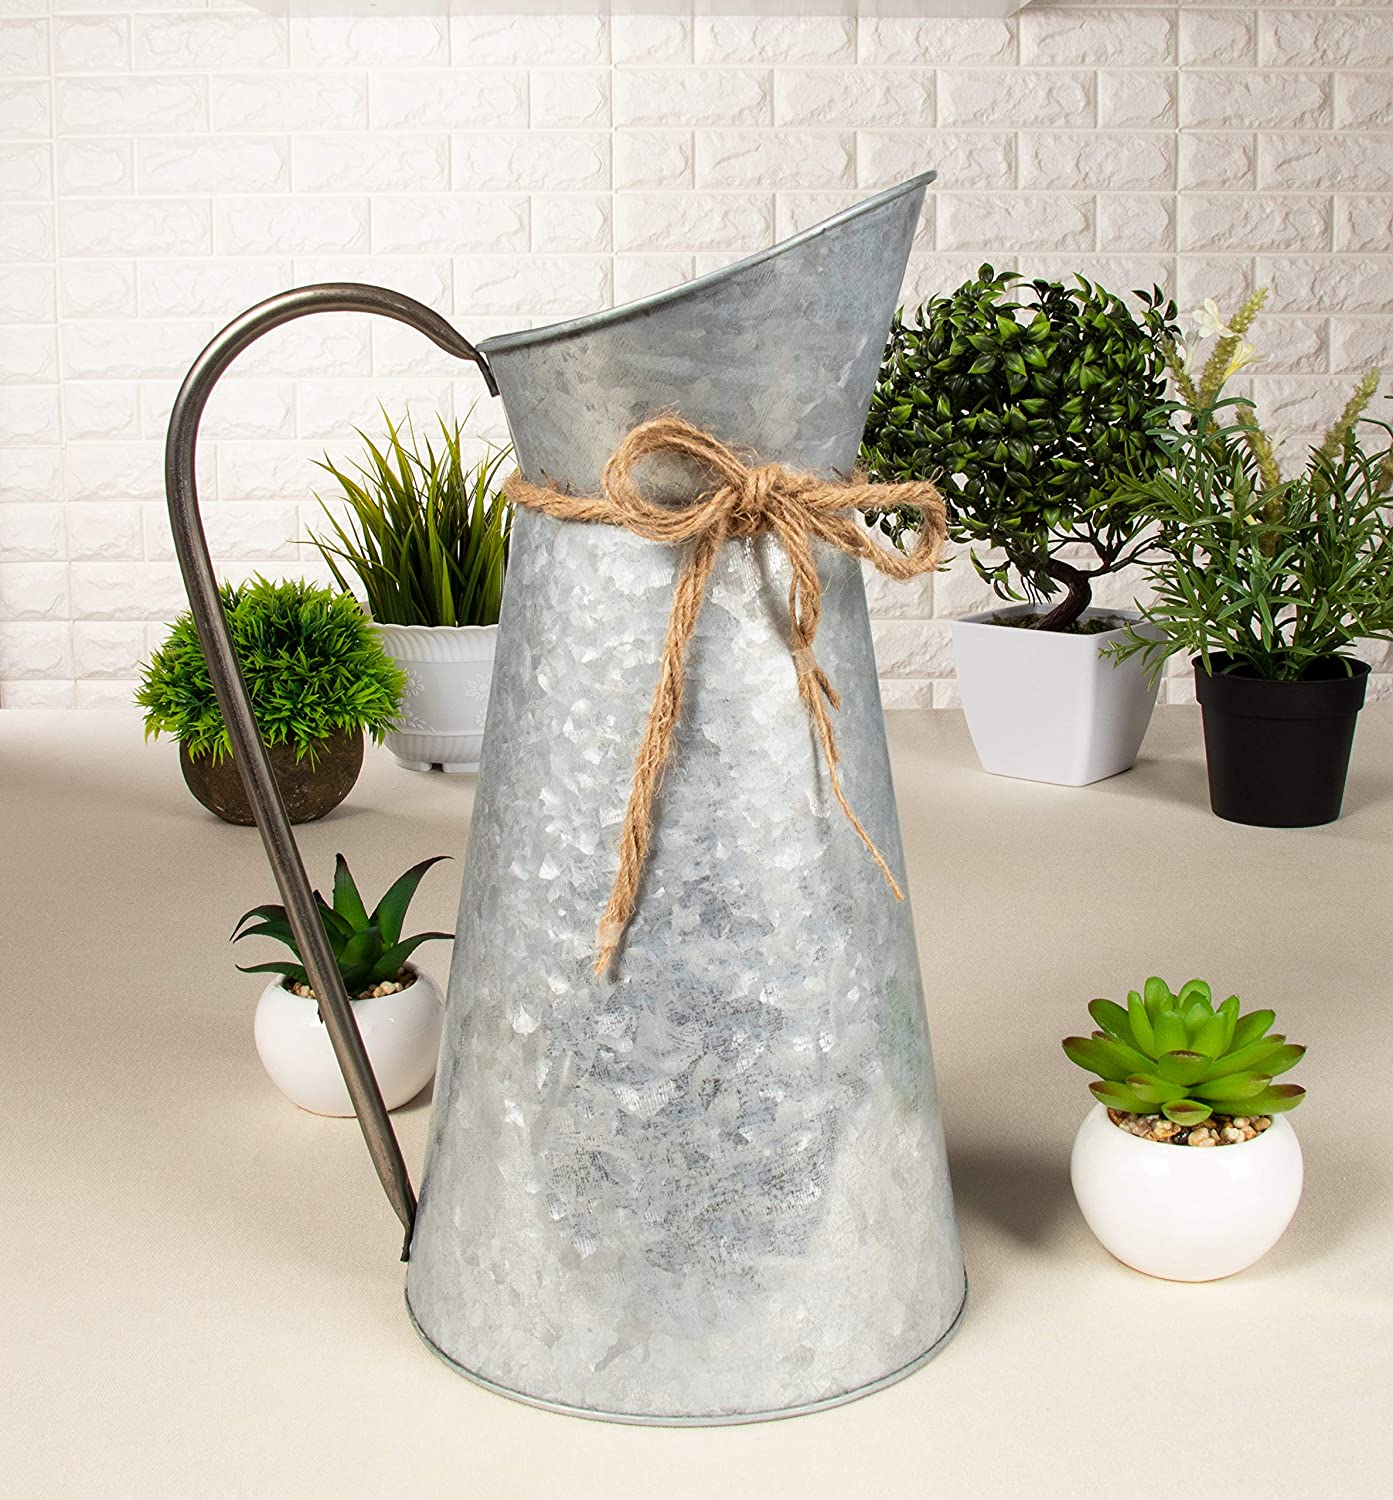 30.5 cm Rustic Galvanized Vase with Handle Watering Can